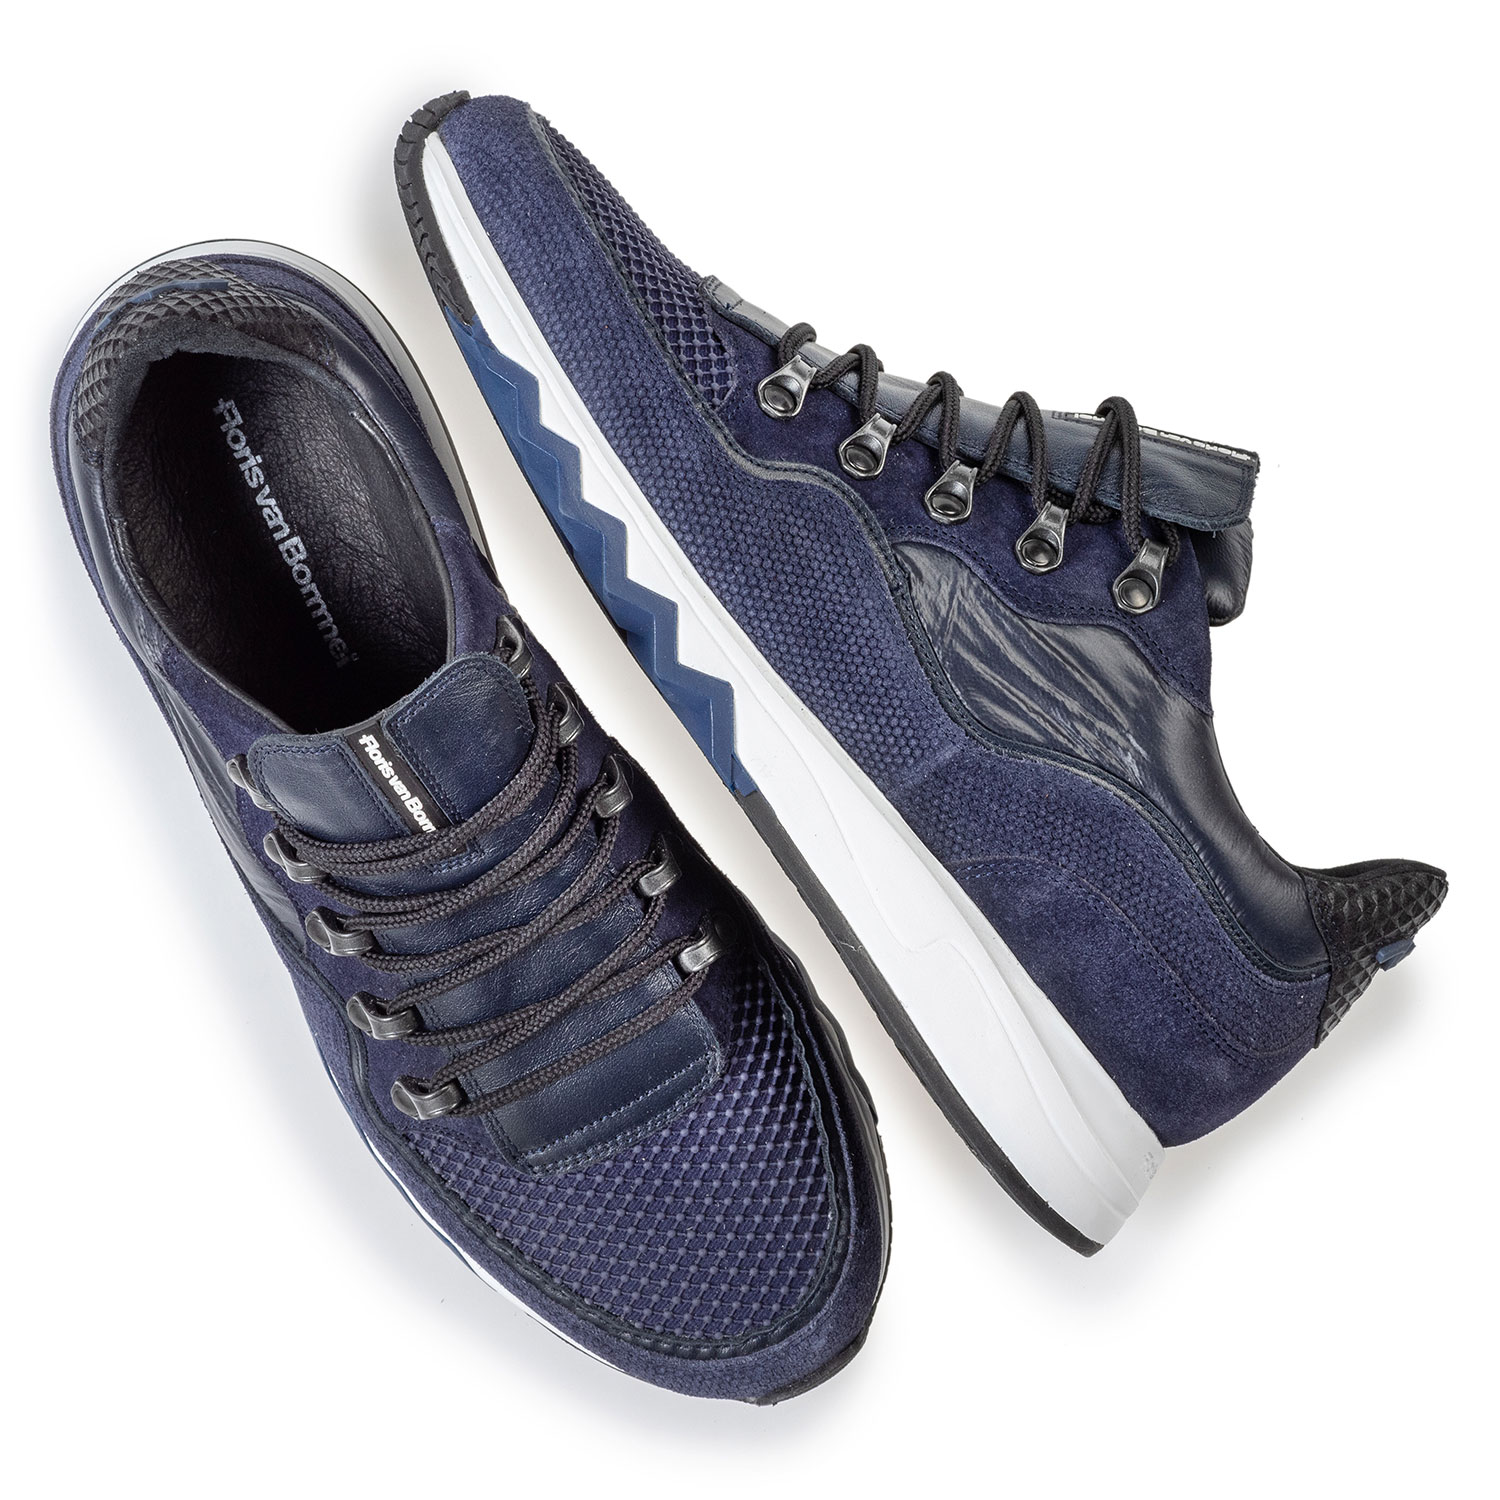 16393/18 - Sneaker with print dark blue